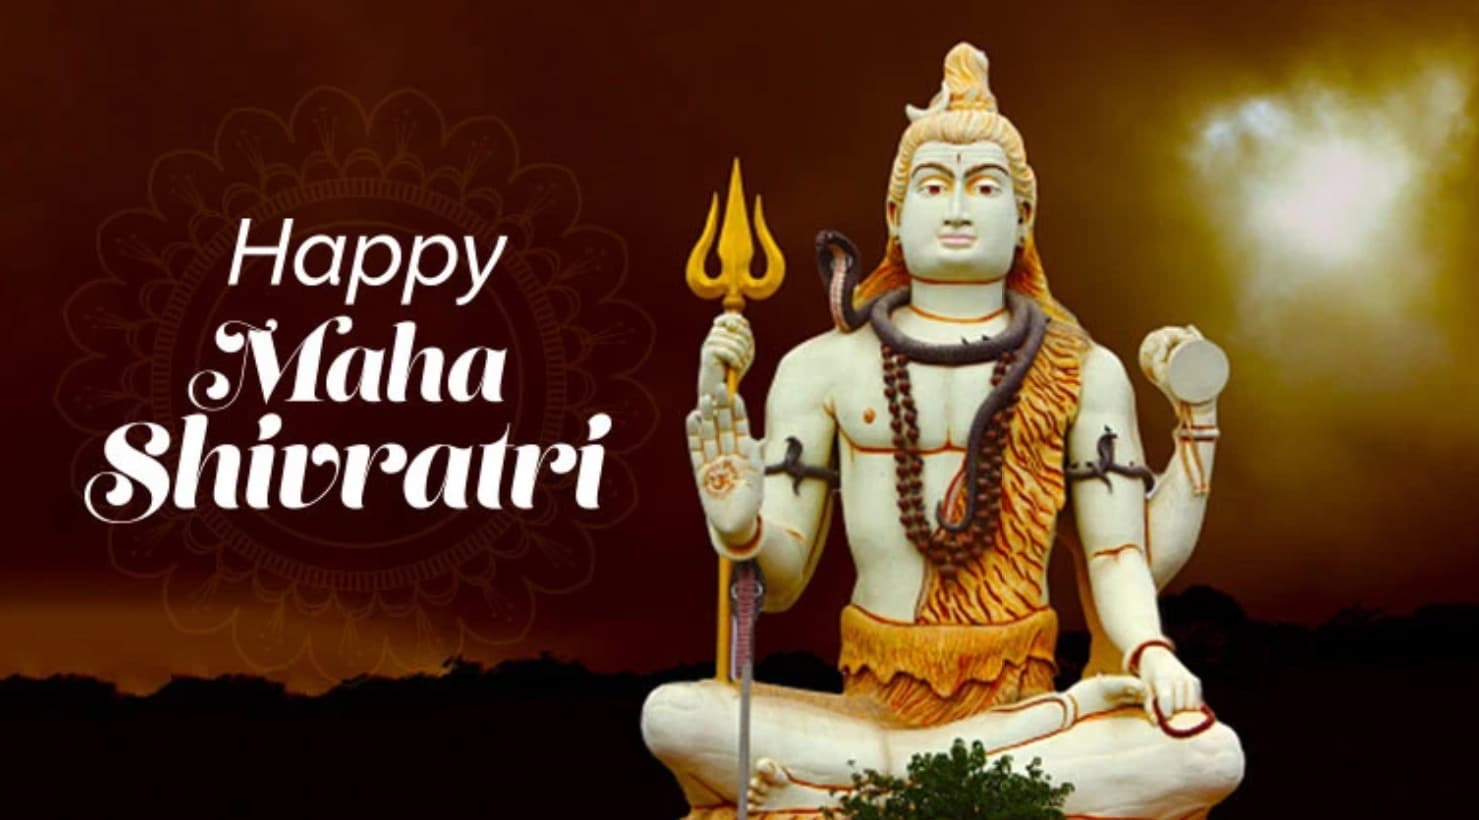 Maha Shivratri Quotes 2020